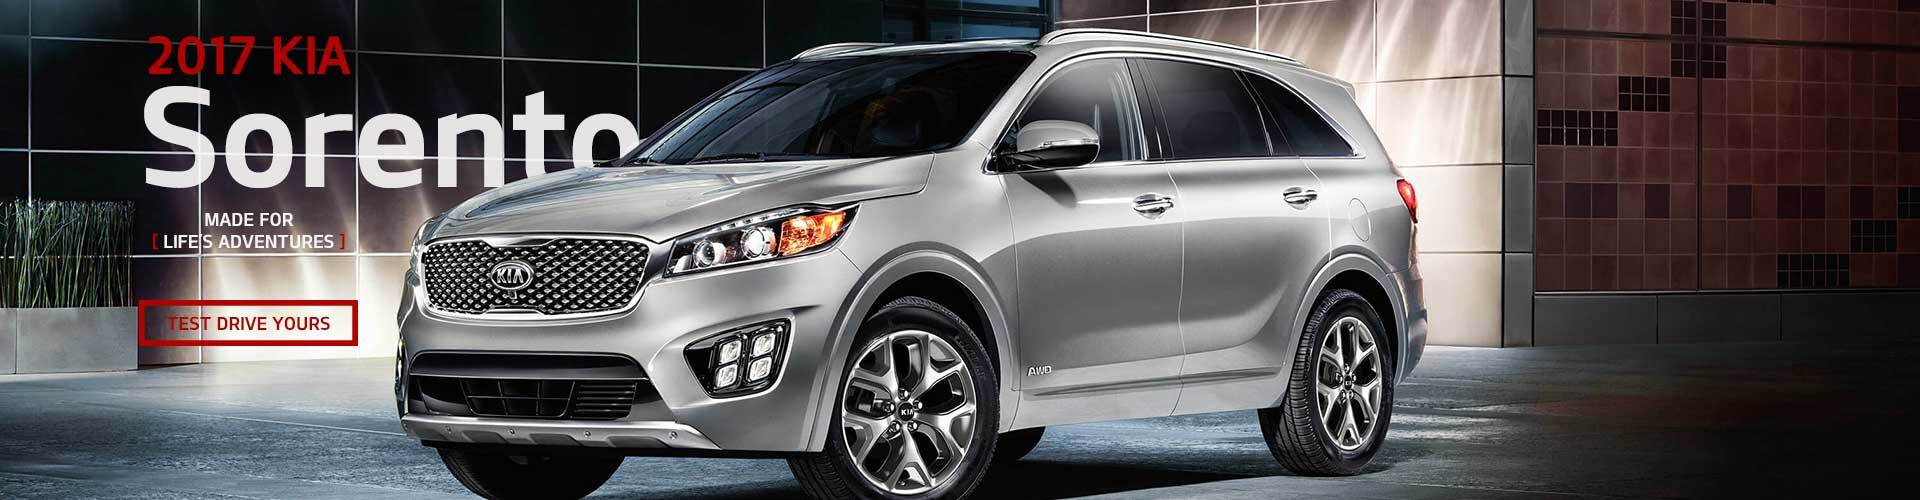 Kia Sorento at Kia West Edmonton}}